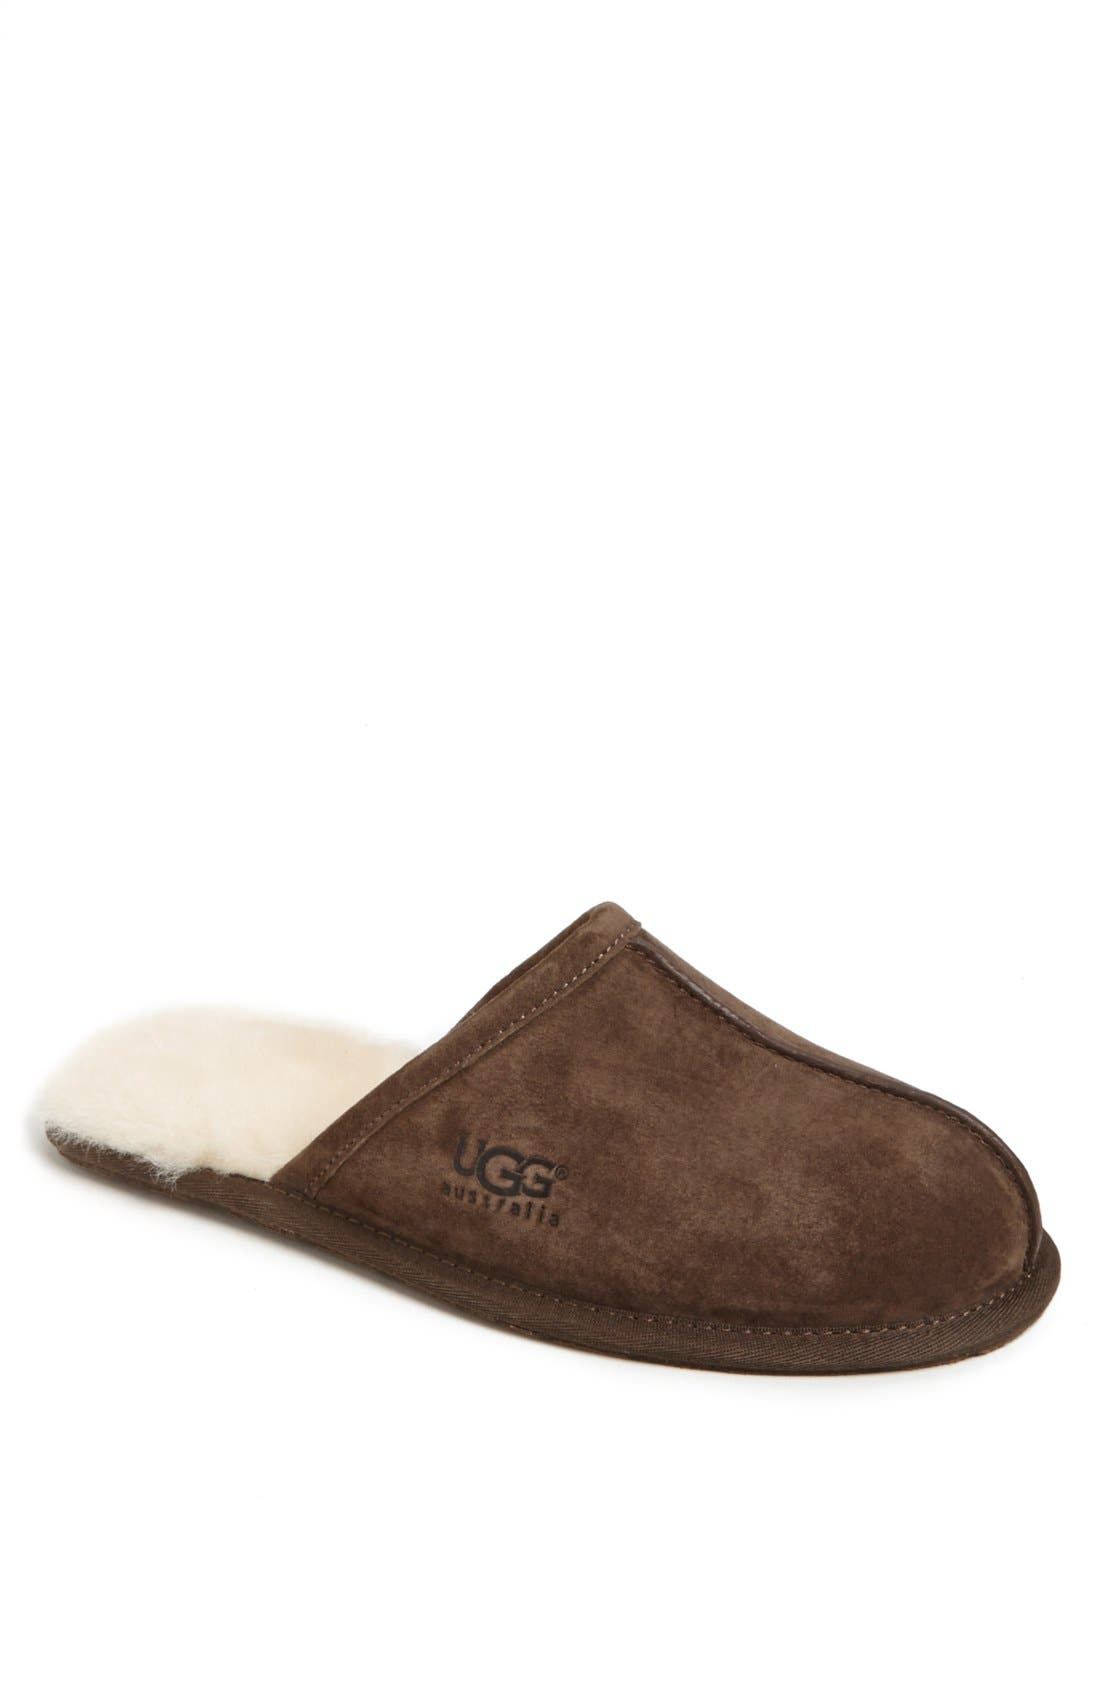 Alternate Image 1 Selected - UGG® Scuff Slipper (Men)